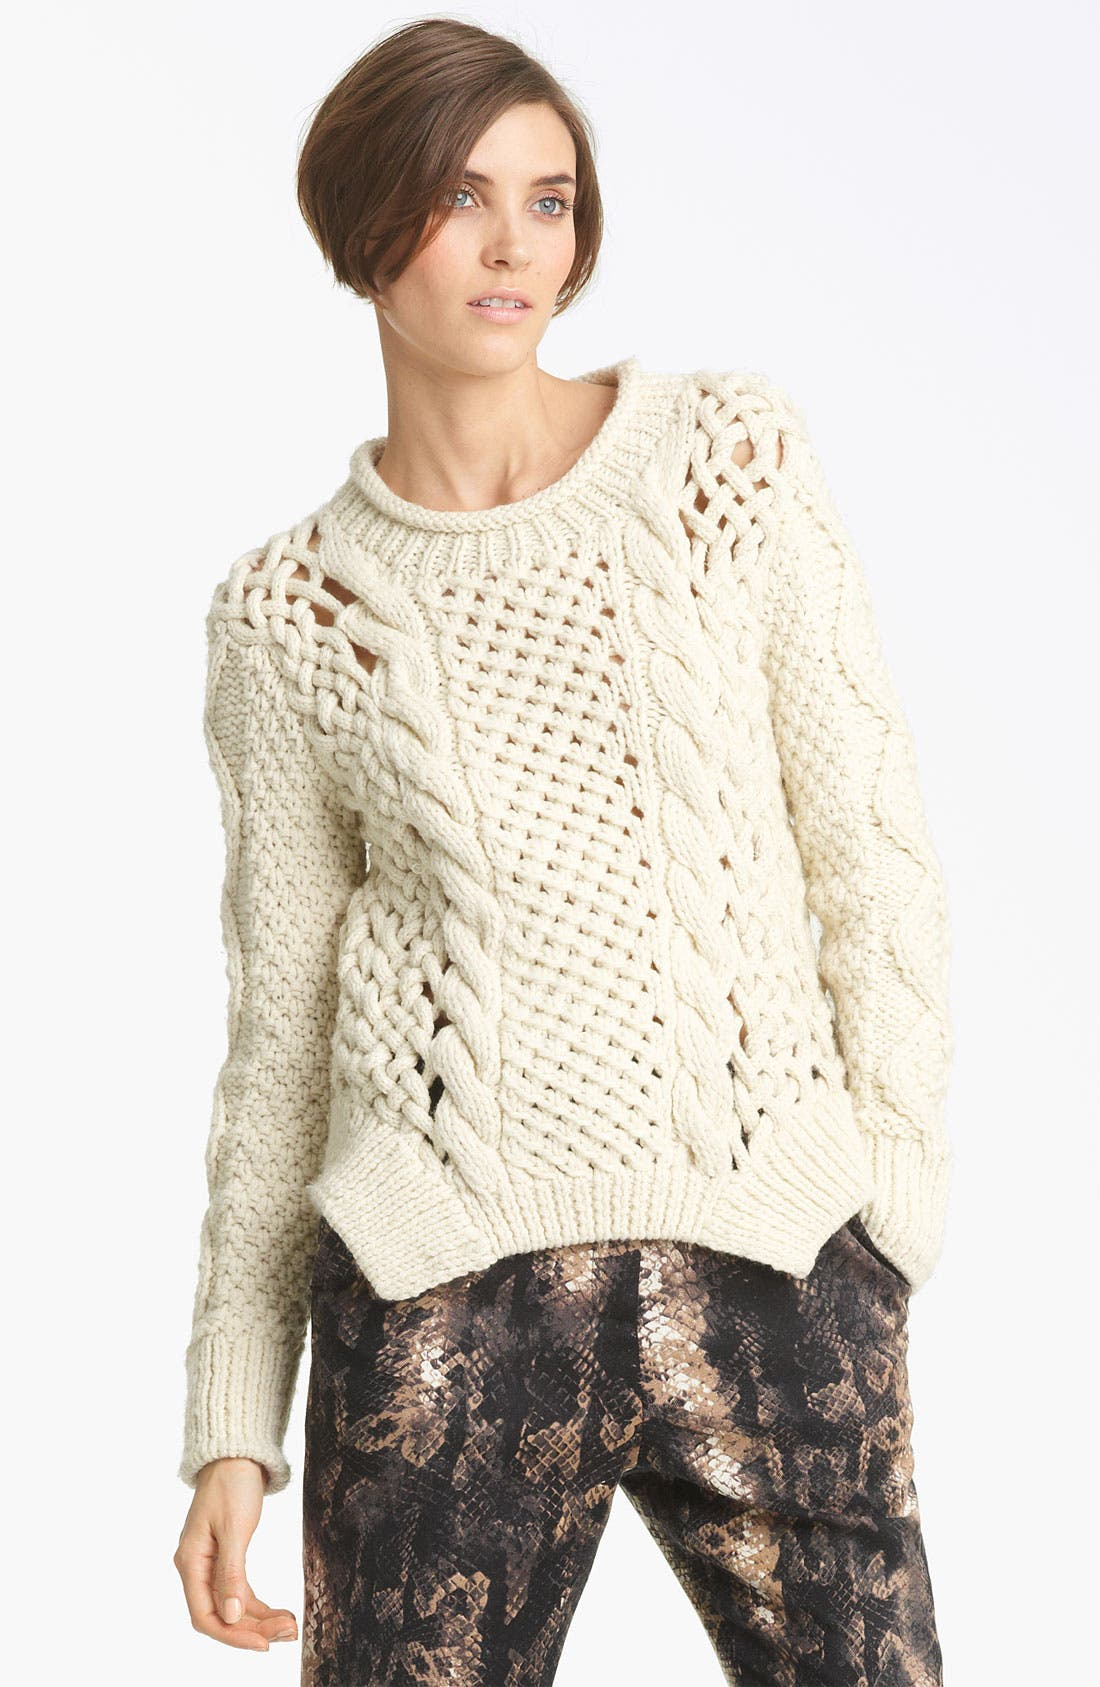 Alternate Image 1 Selected - Yigal Azrouël Duo Knit Sweater